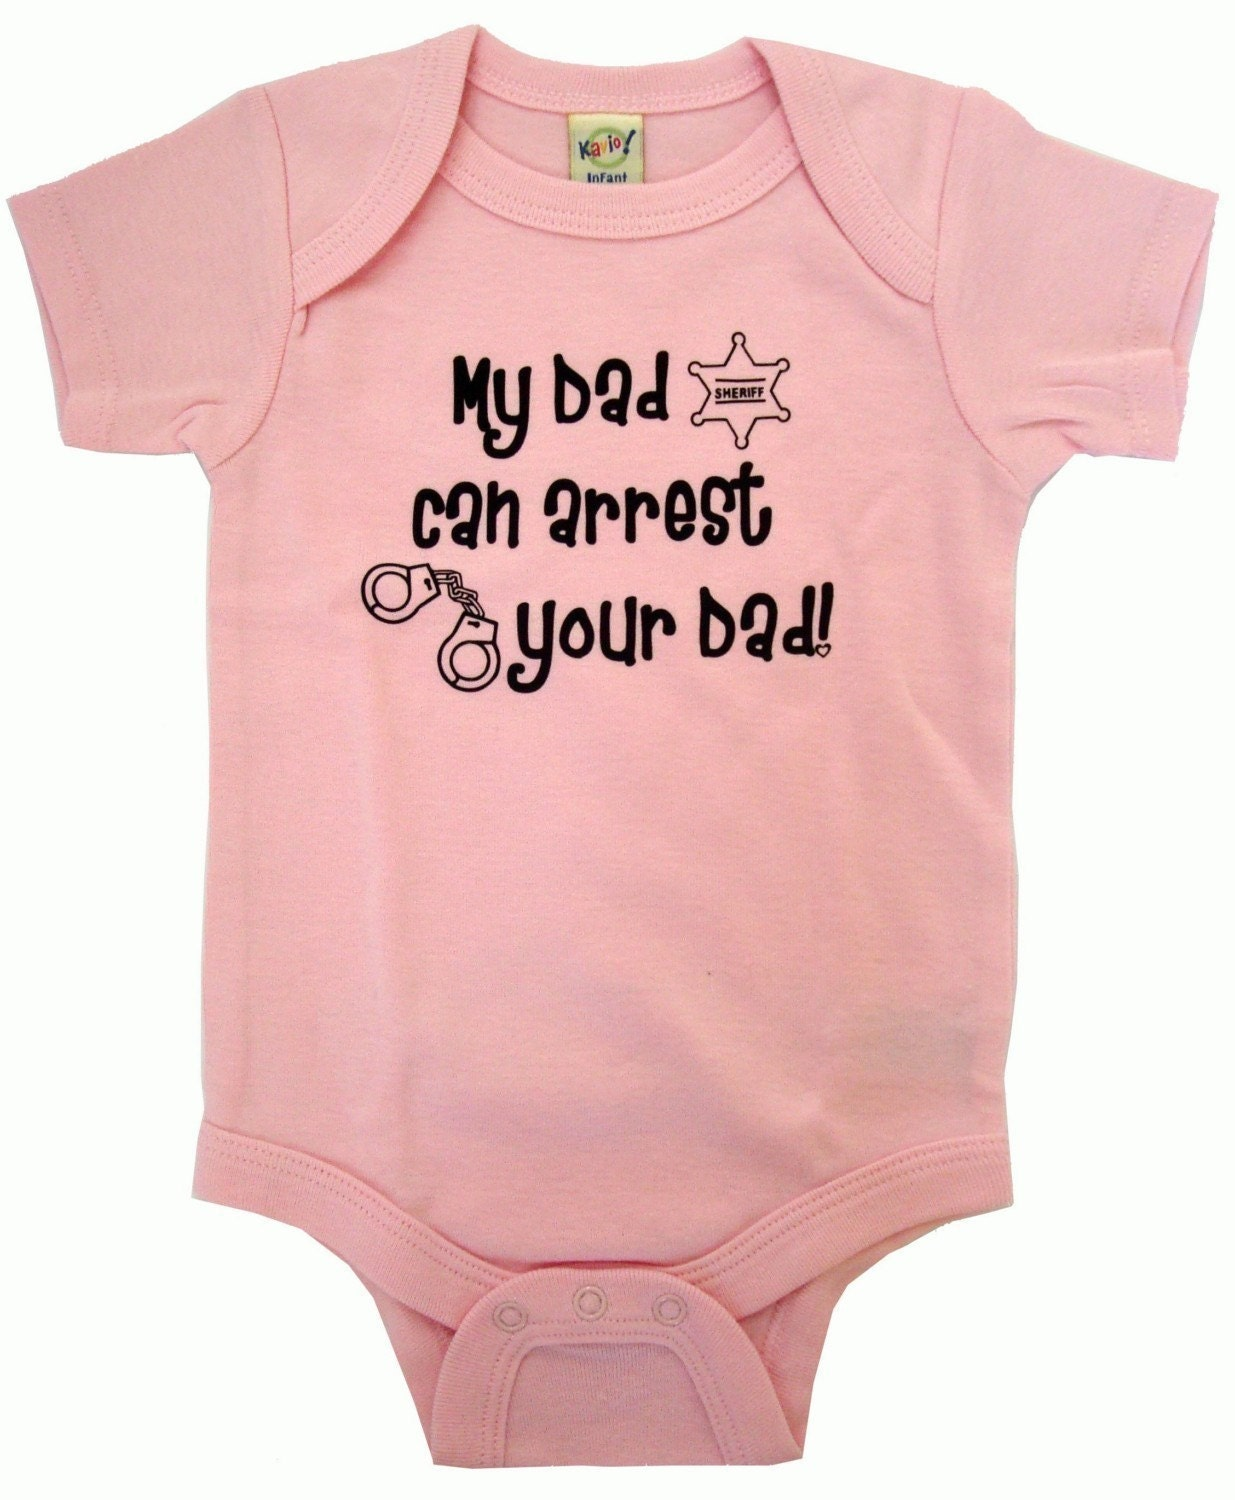 My daddy can arrest your dad custom personalized funny baby